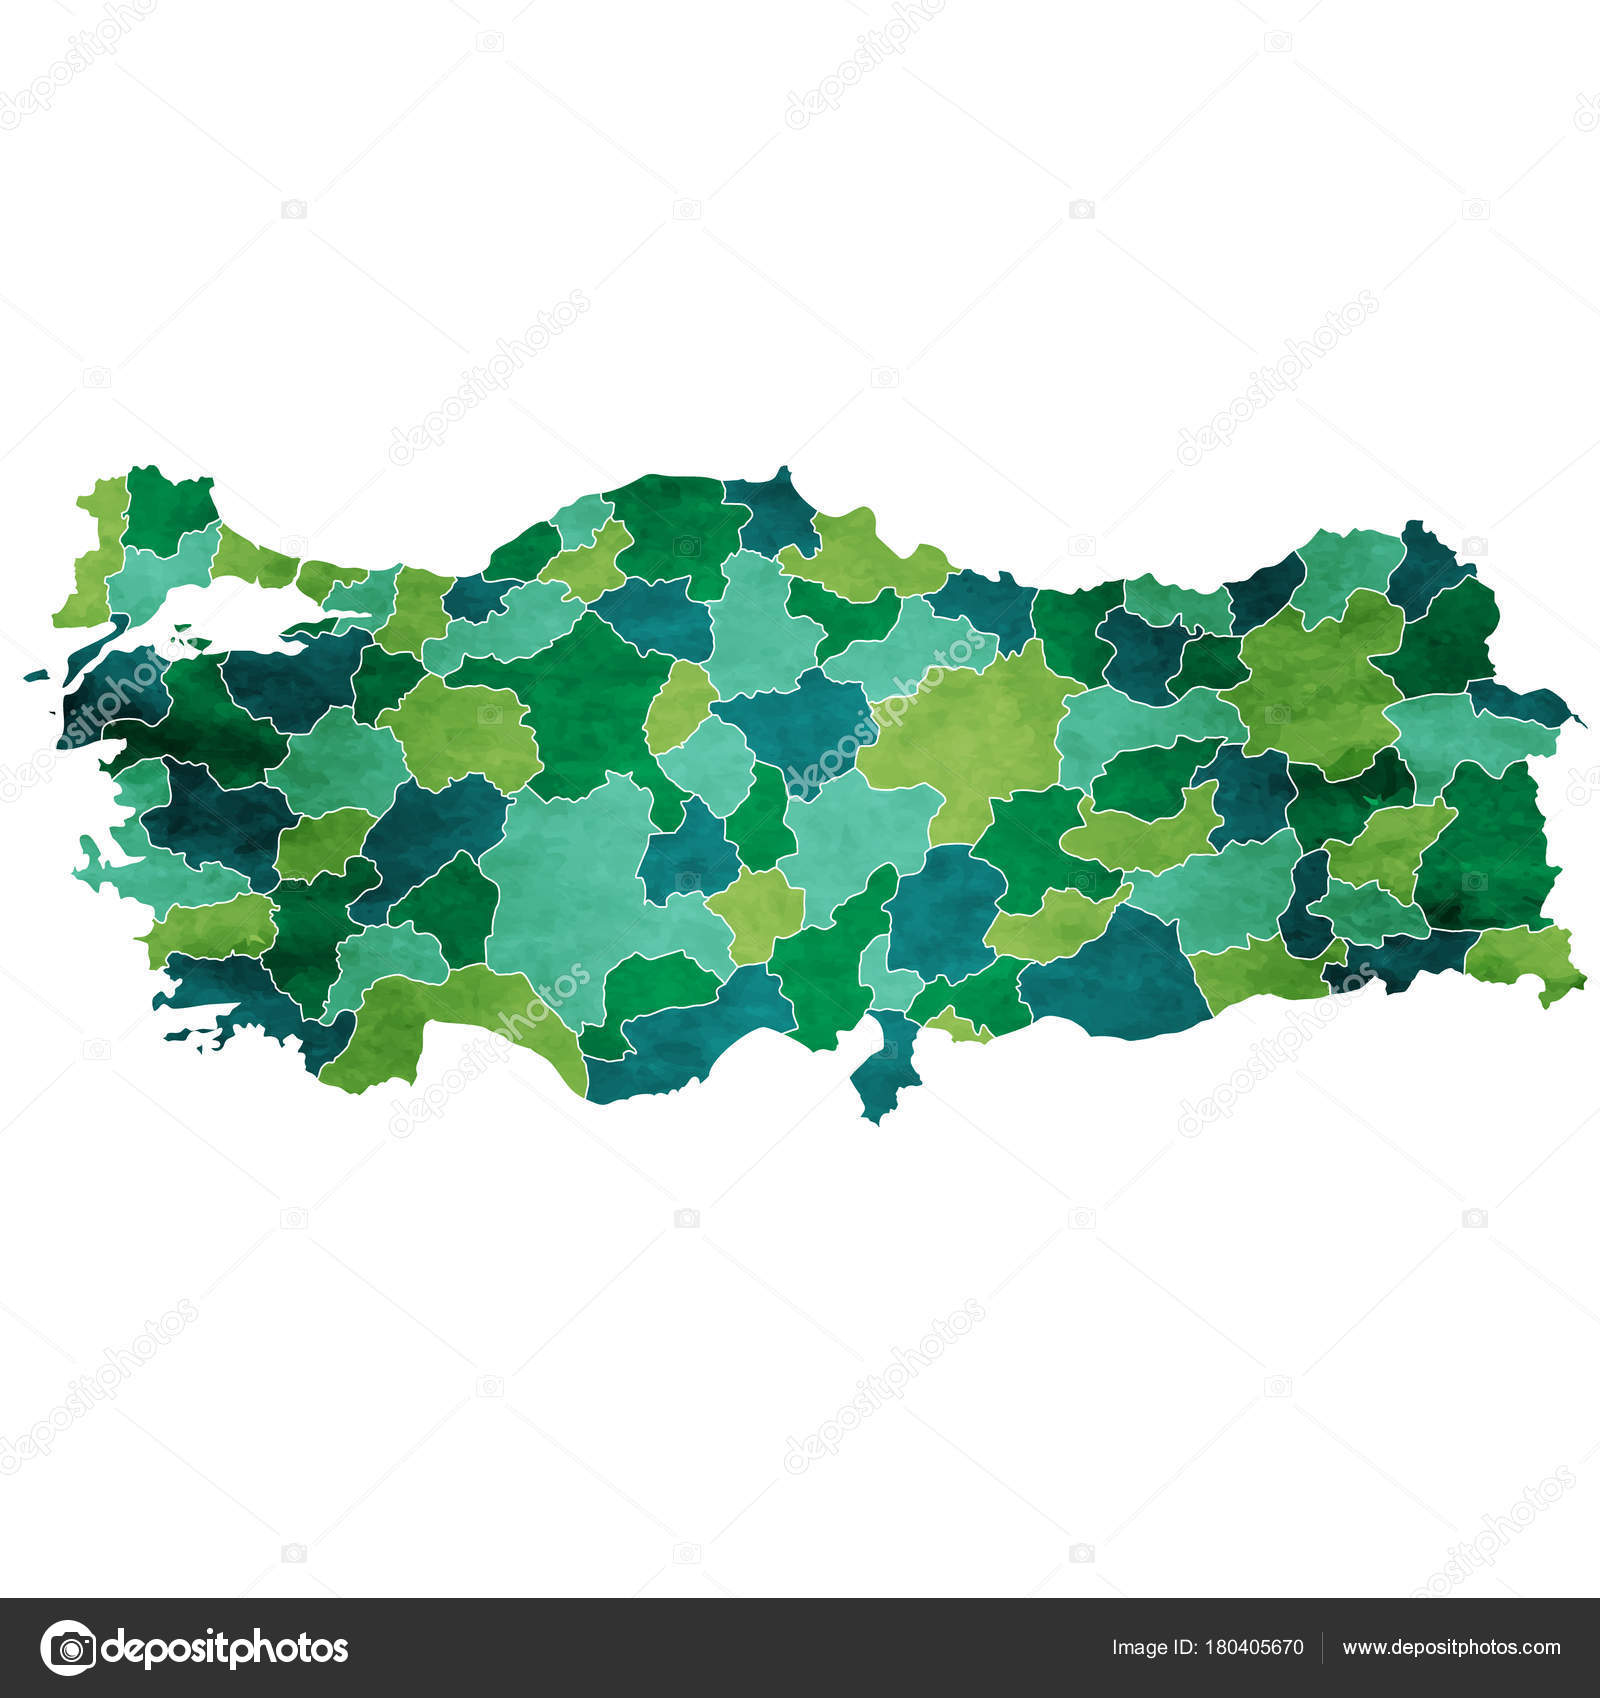 Turkey World Map Country Icon — Stock Vector © JBOY24 #180405670